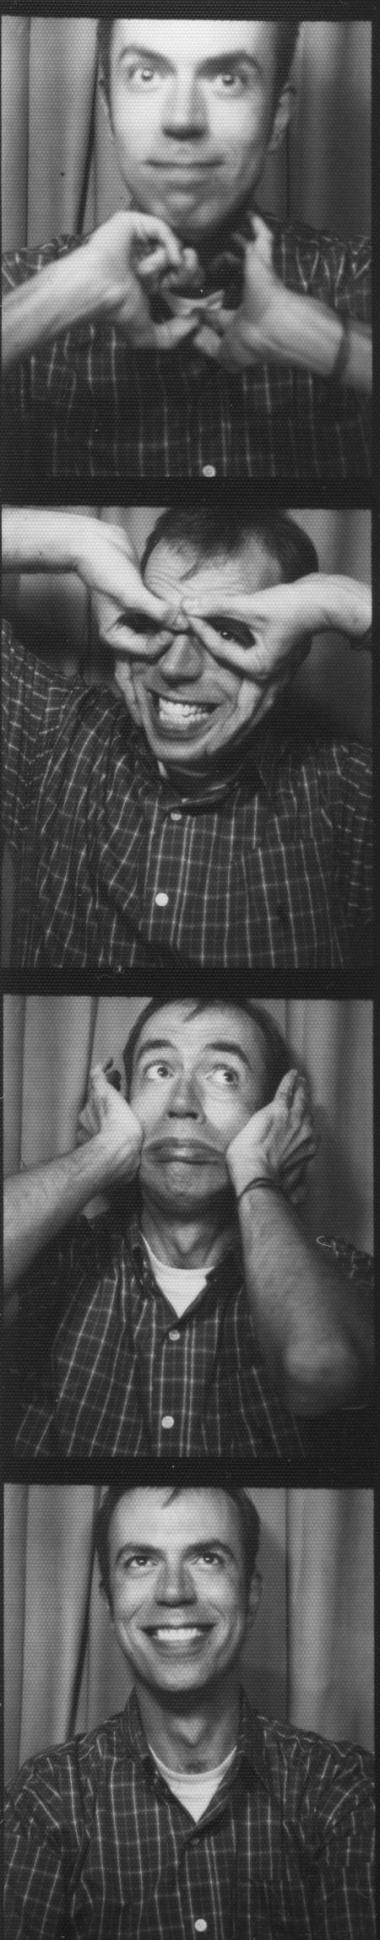 Some (flattering) pictures taken in a photo booth at a wedding.